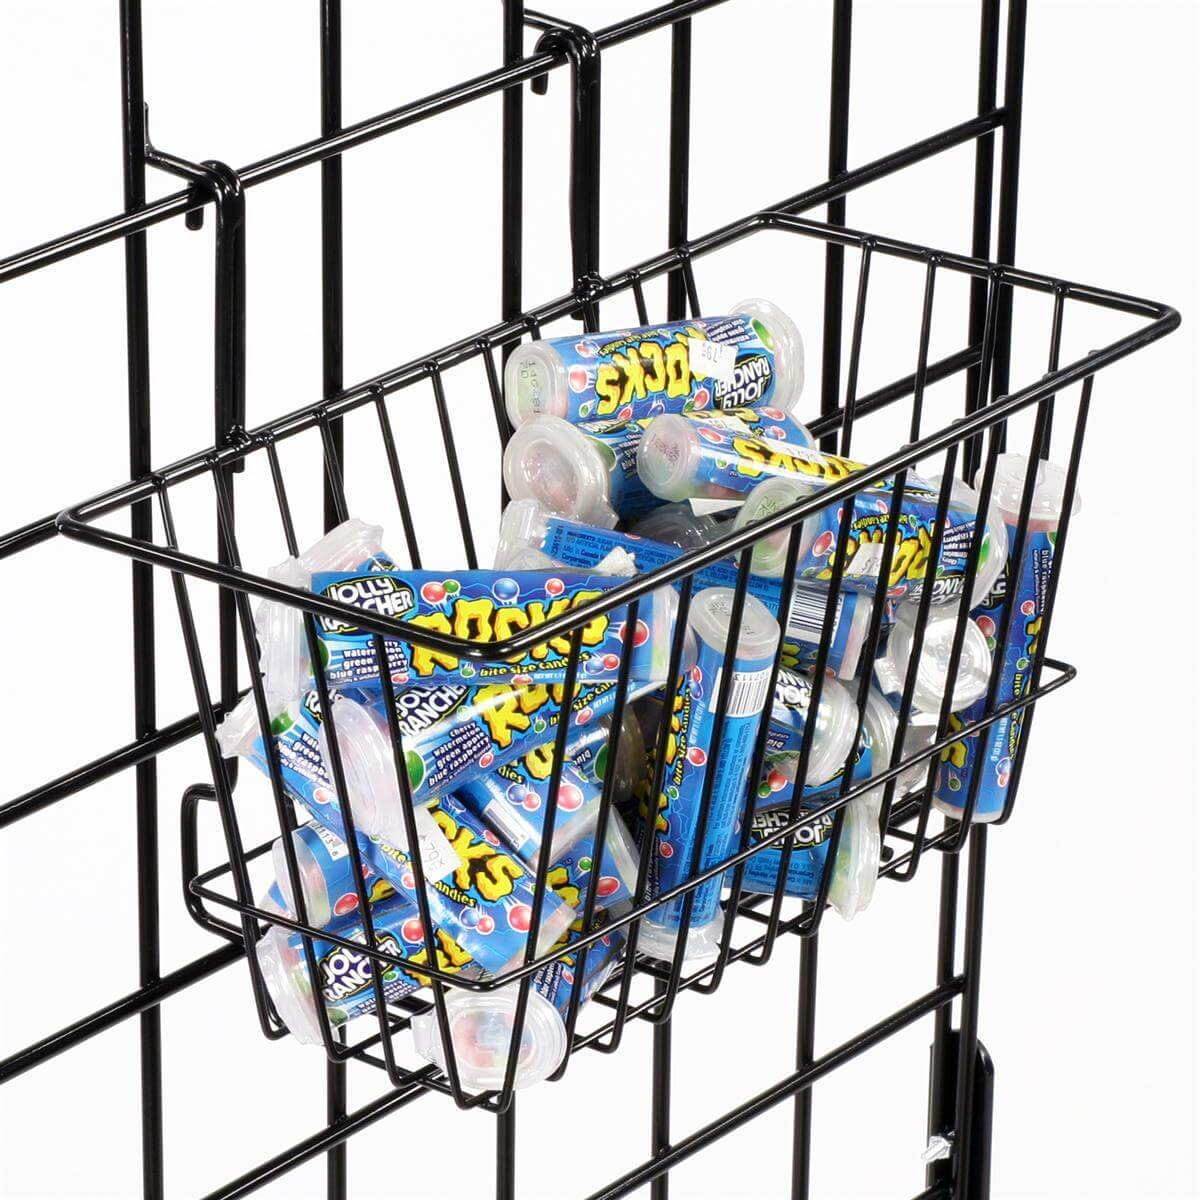 Only Hangers Small Wire Storage Baskets for Gridwall, Slatwall and Pegboard - Black Finish - Dimensions: 12'' x 6'' x 6'' Deep - Economically Sold in a Set of 6 Baskets by Only Hangers (Image #6)